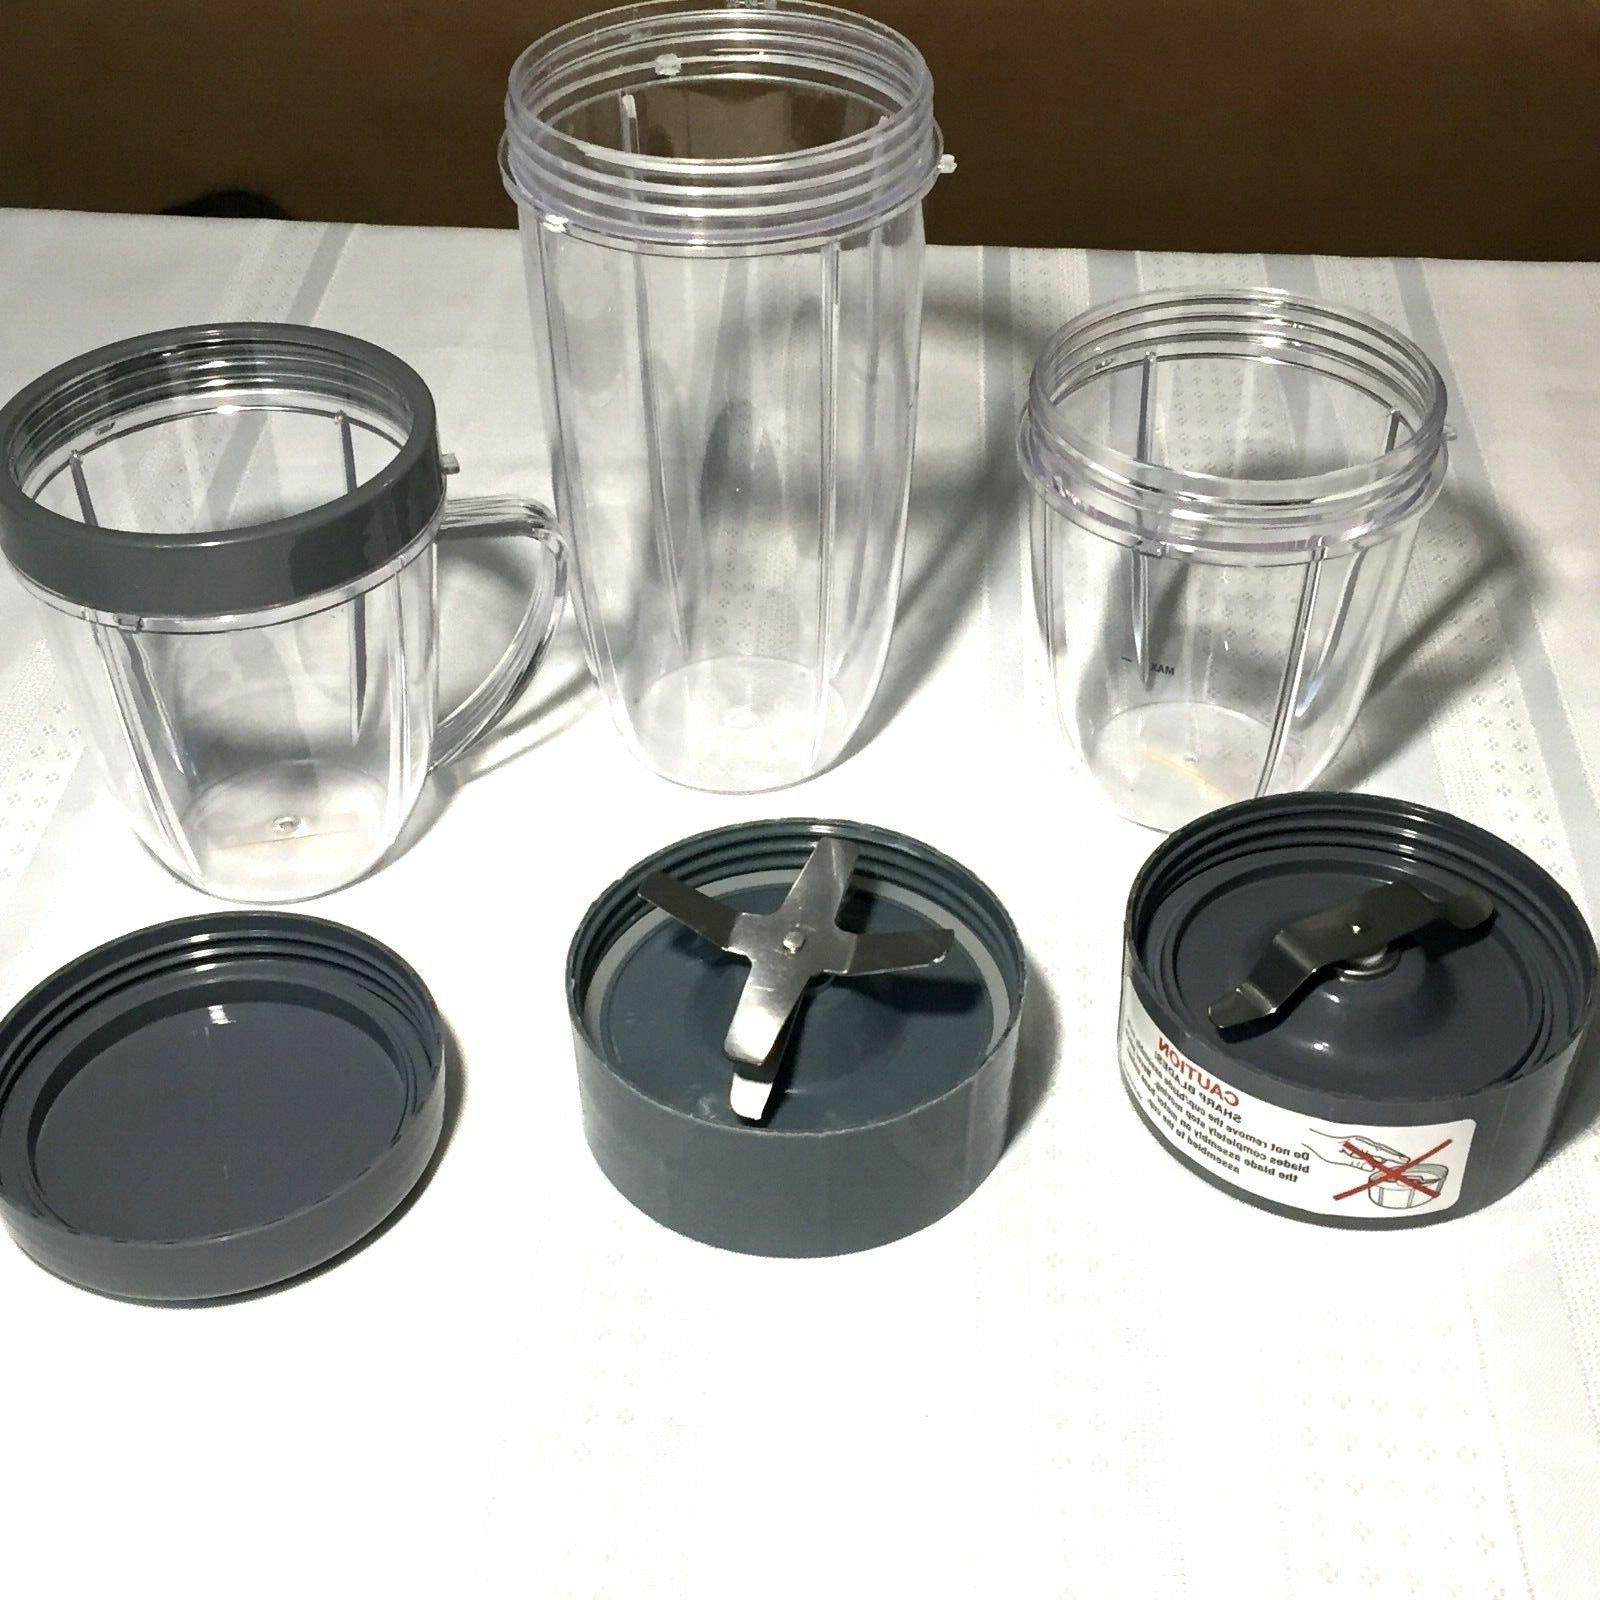 cup and blade 6 pc set